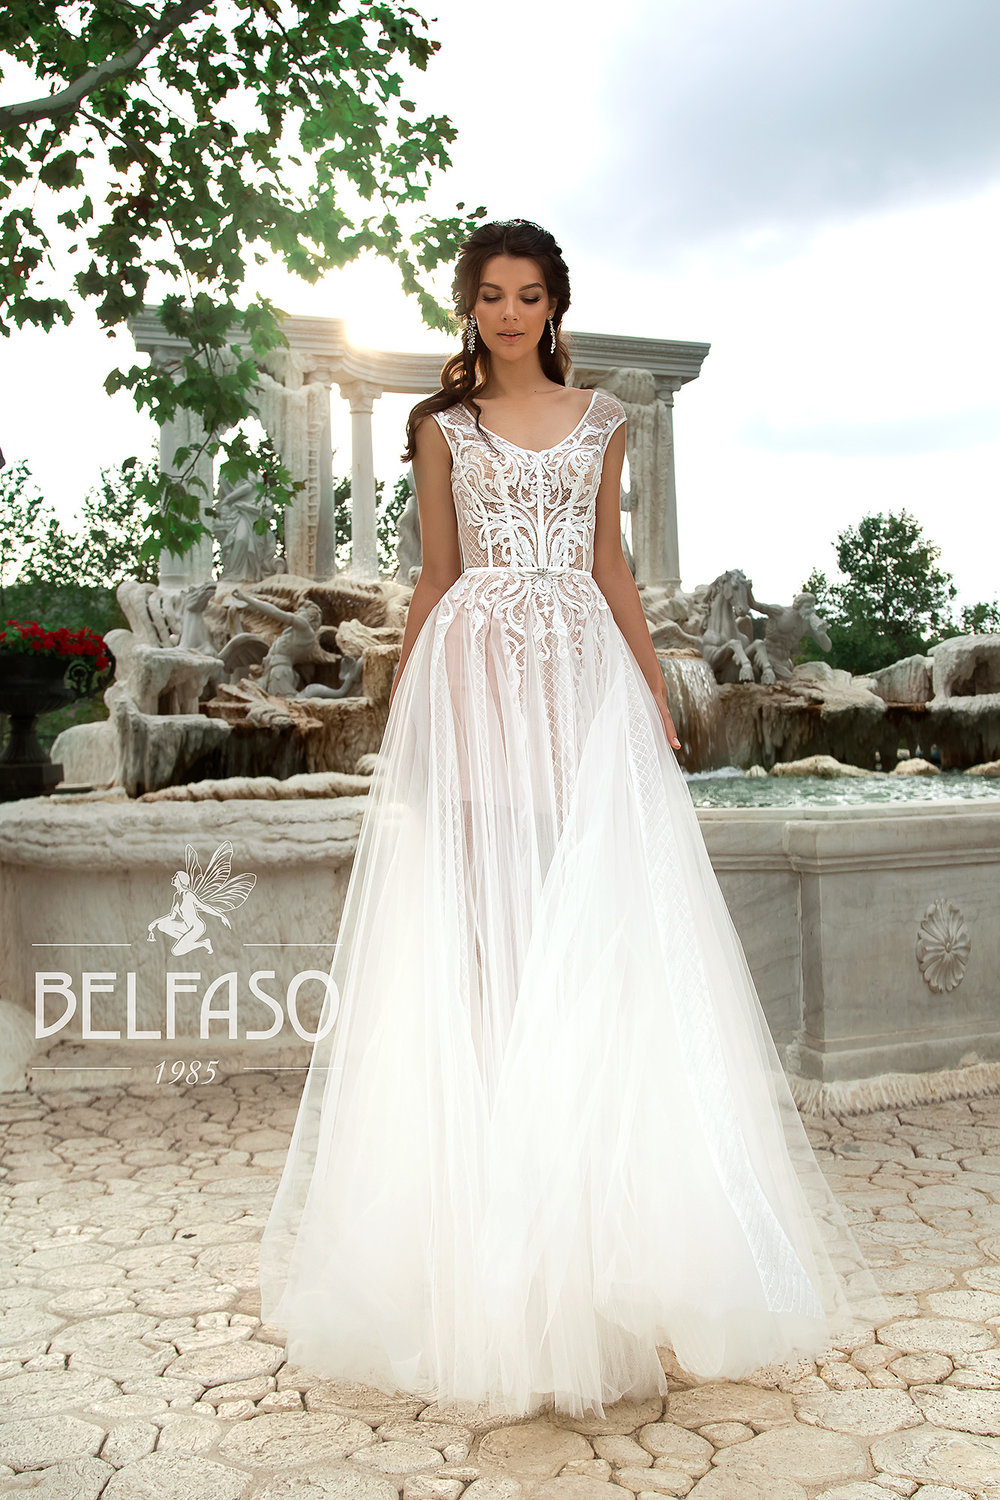 AKVA wedding dress by BELFASO